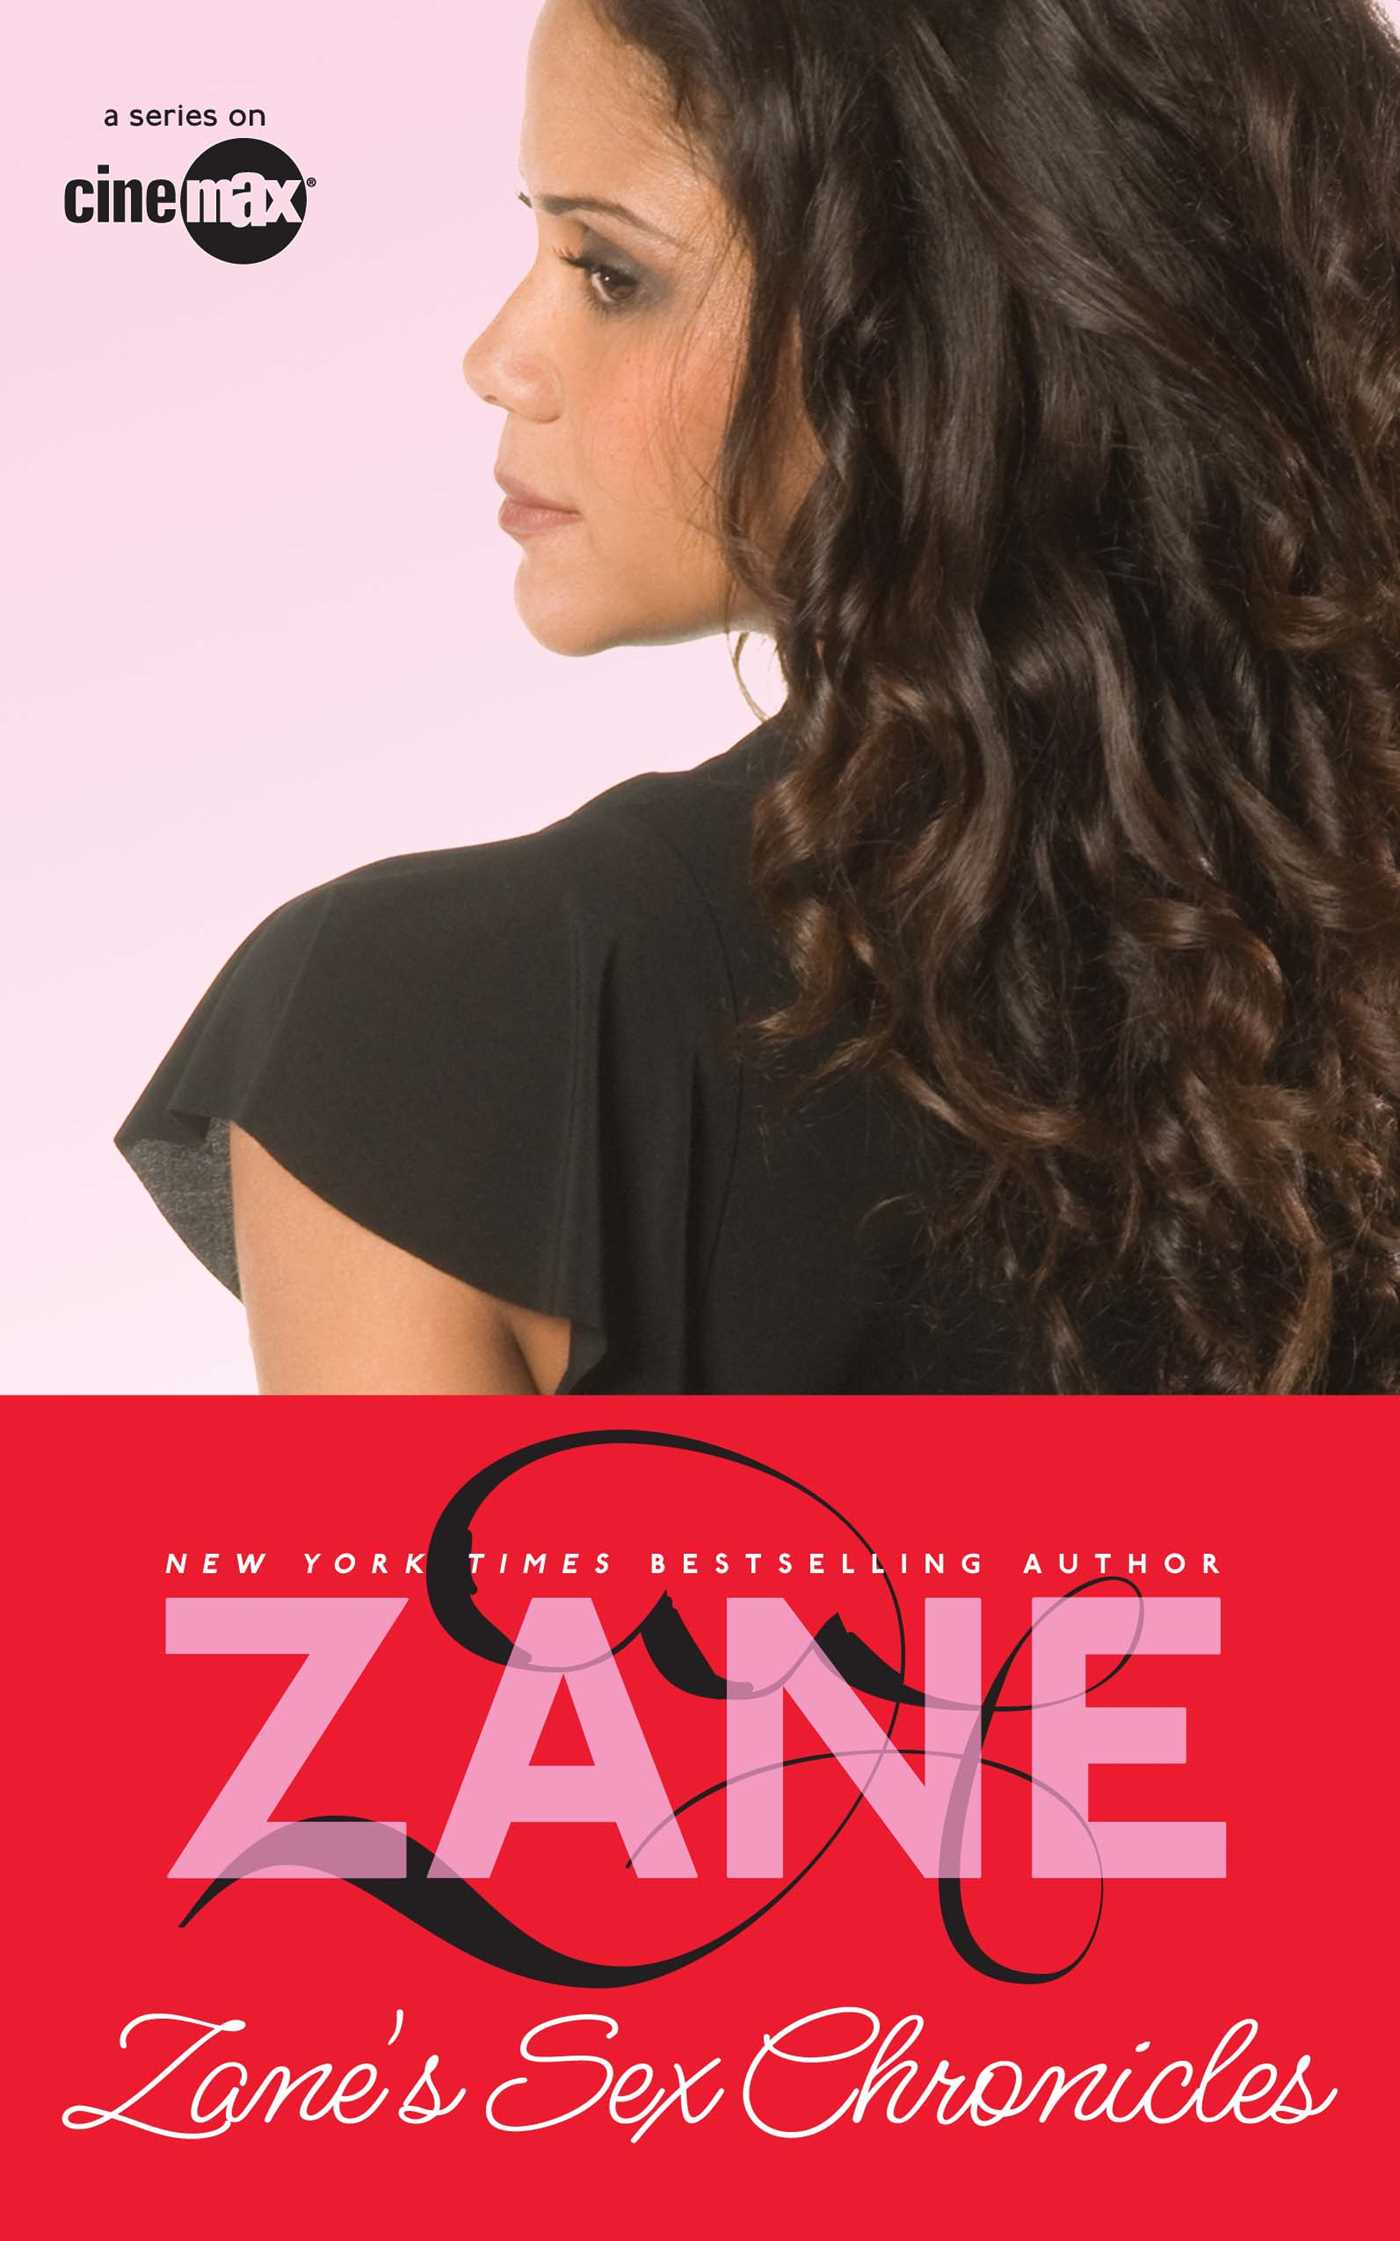 Zanes sex chronicles tv series